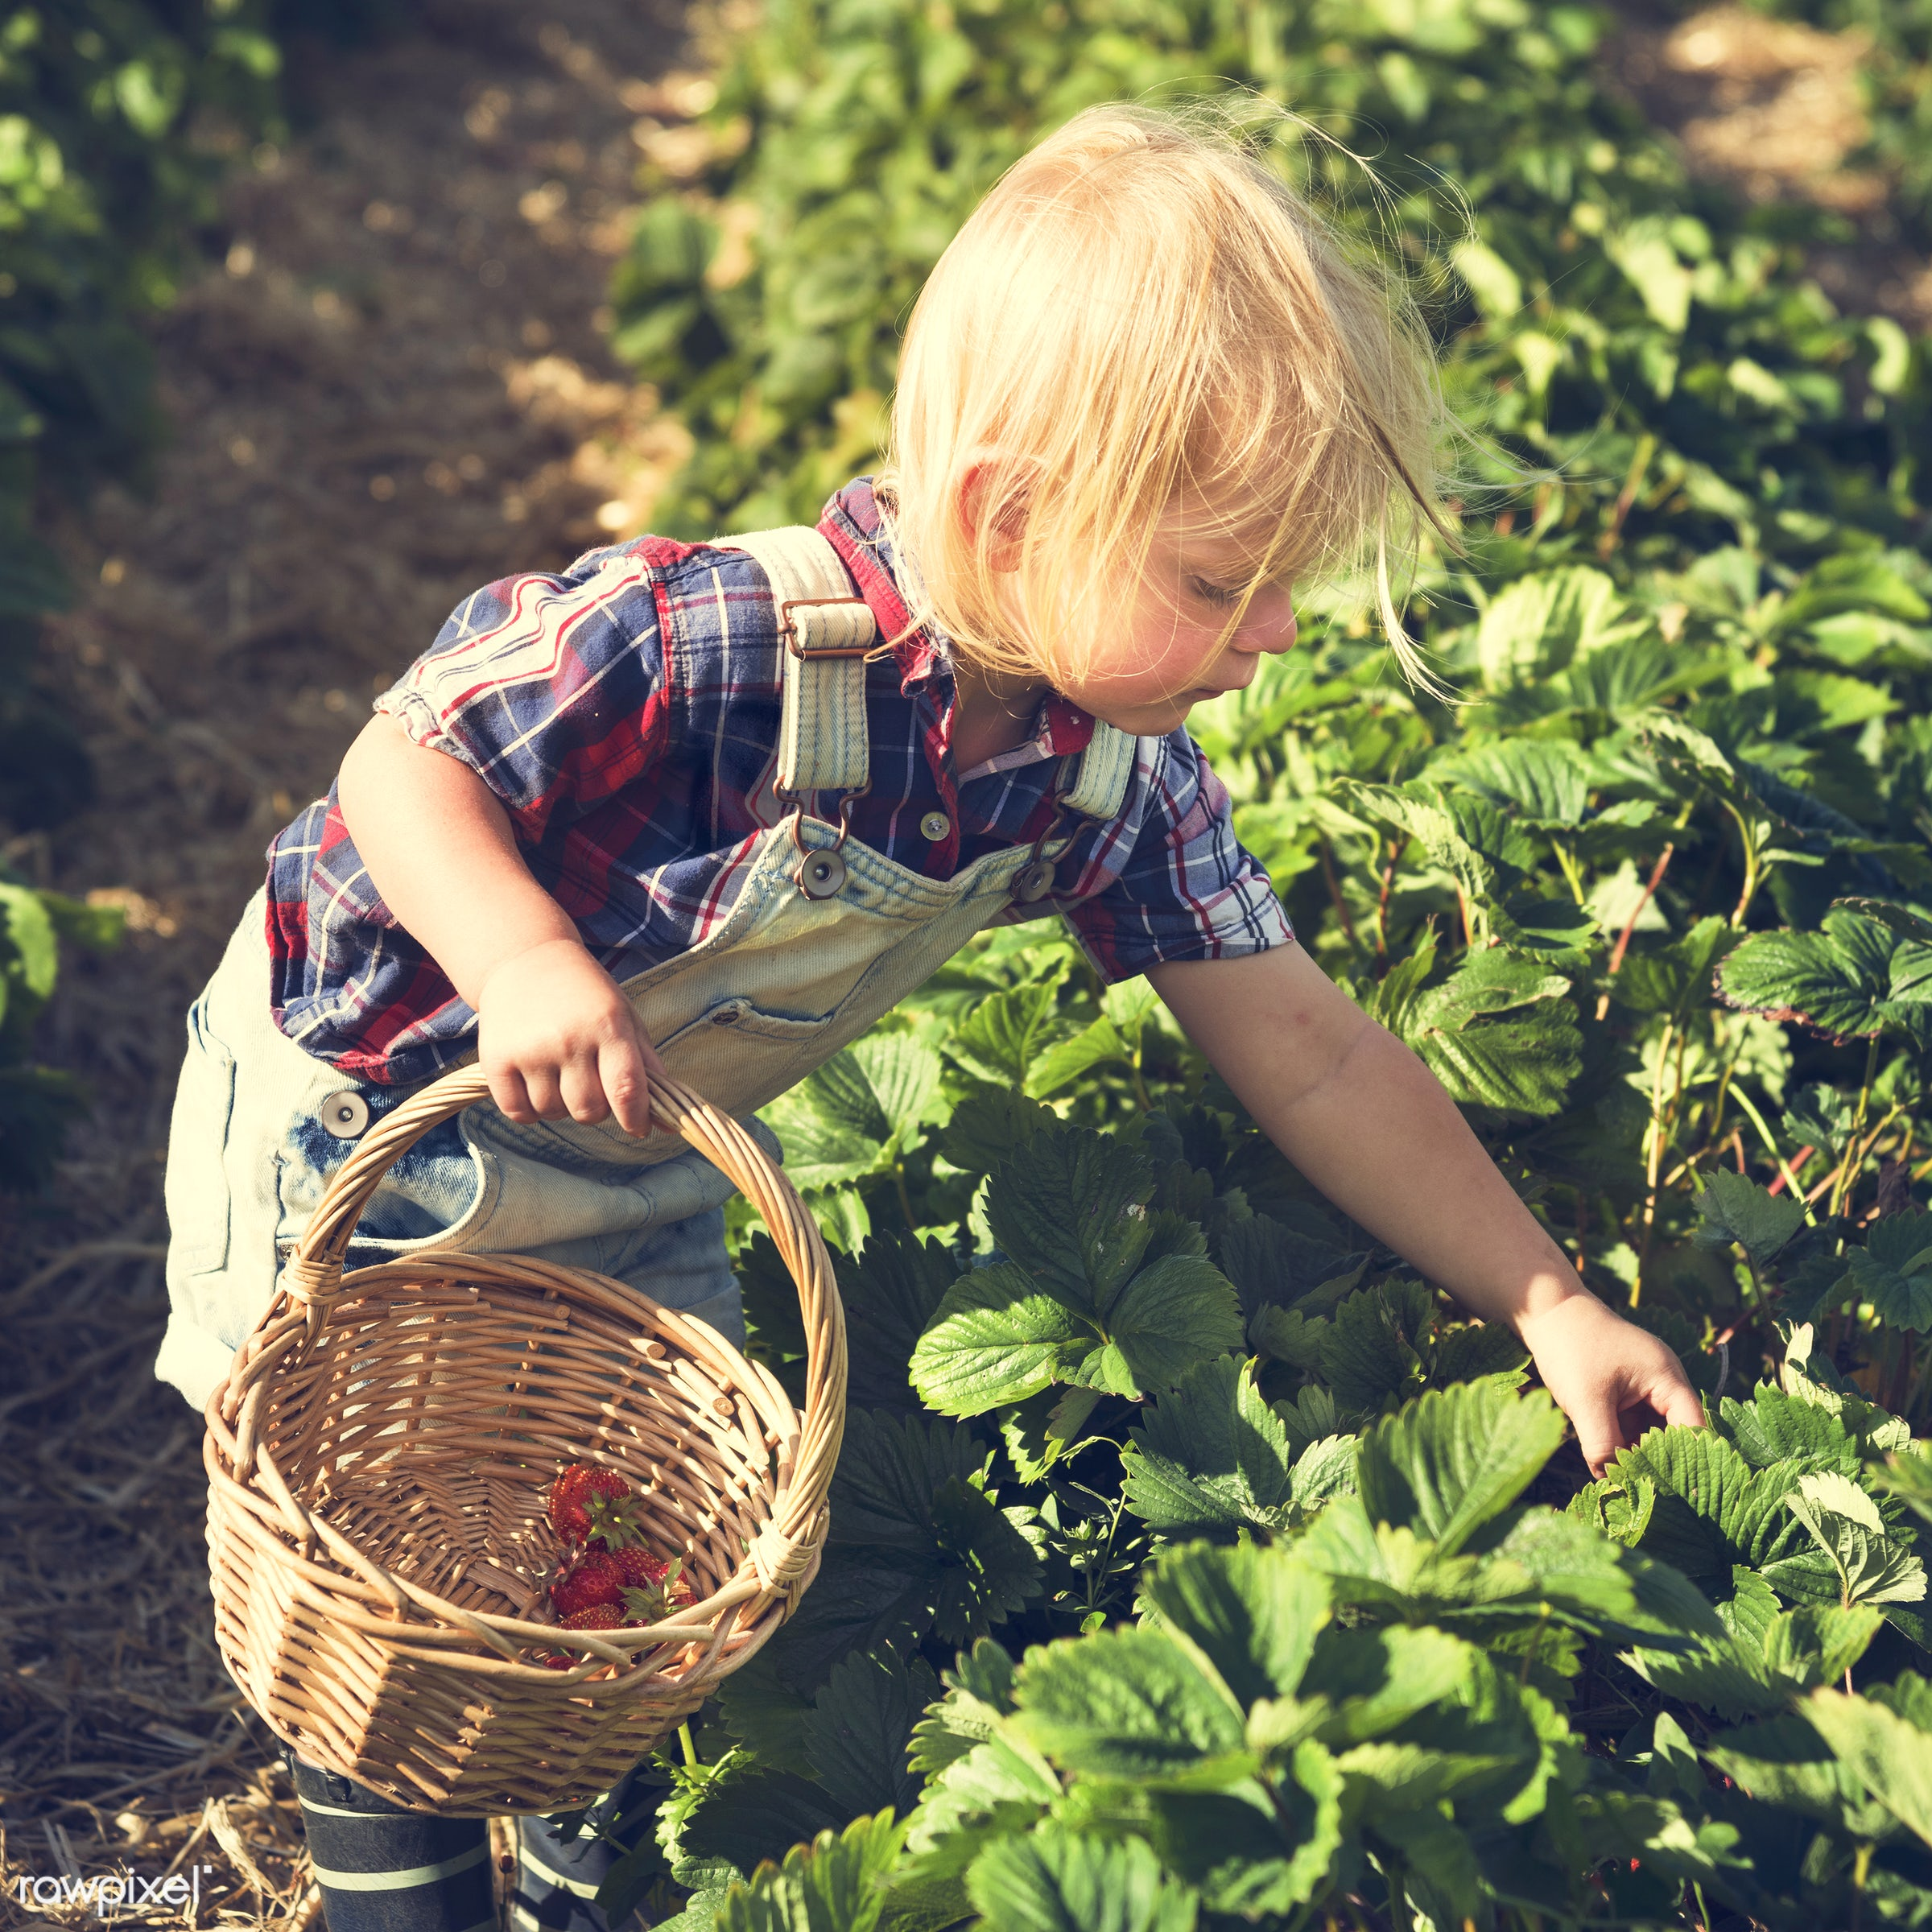 arboretum, backyard, bloom, blooming, botanical, botany, boy, country, countryside, cultivate, cultivating, flora, garden,...